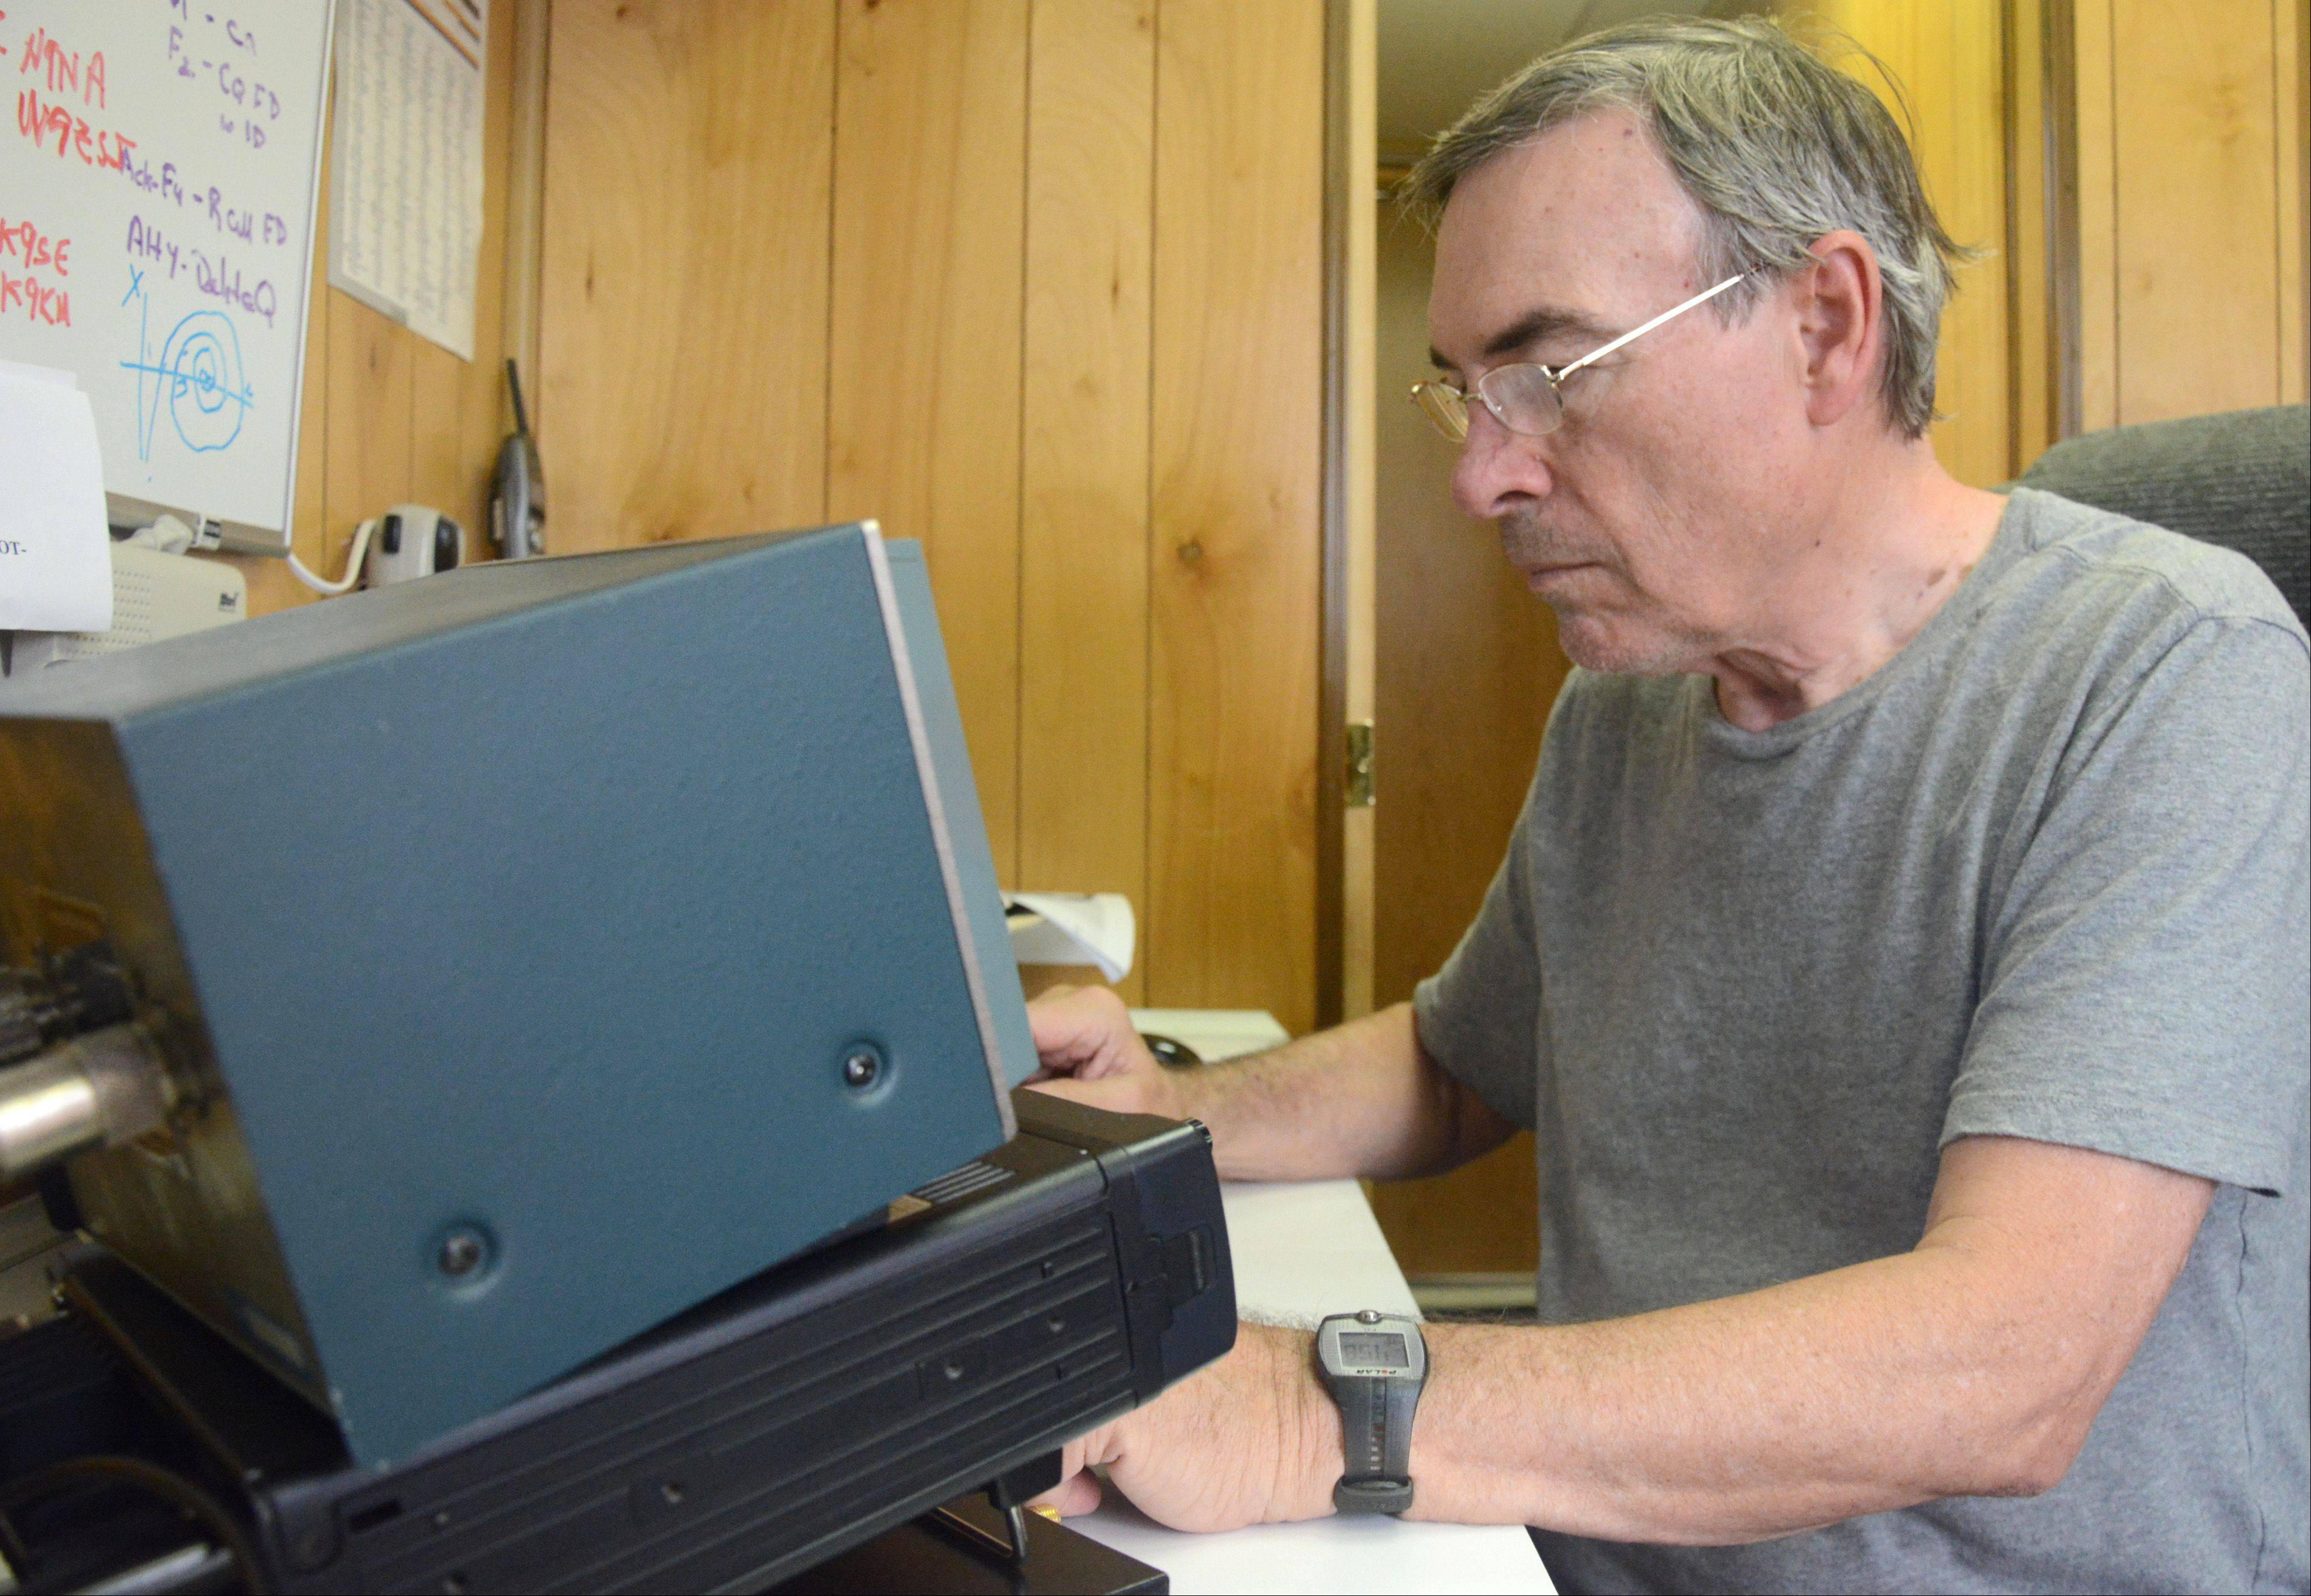 John Siepmann of Buffalo Grove tried to contact other amateur radio enthusiasts via an HF radio using morse code.